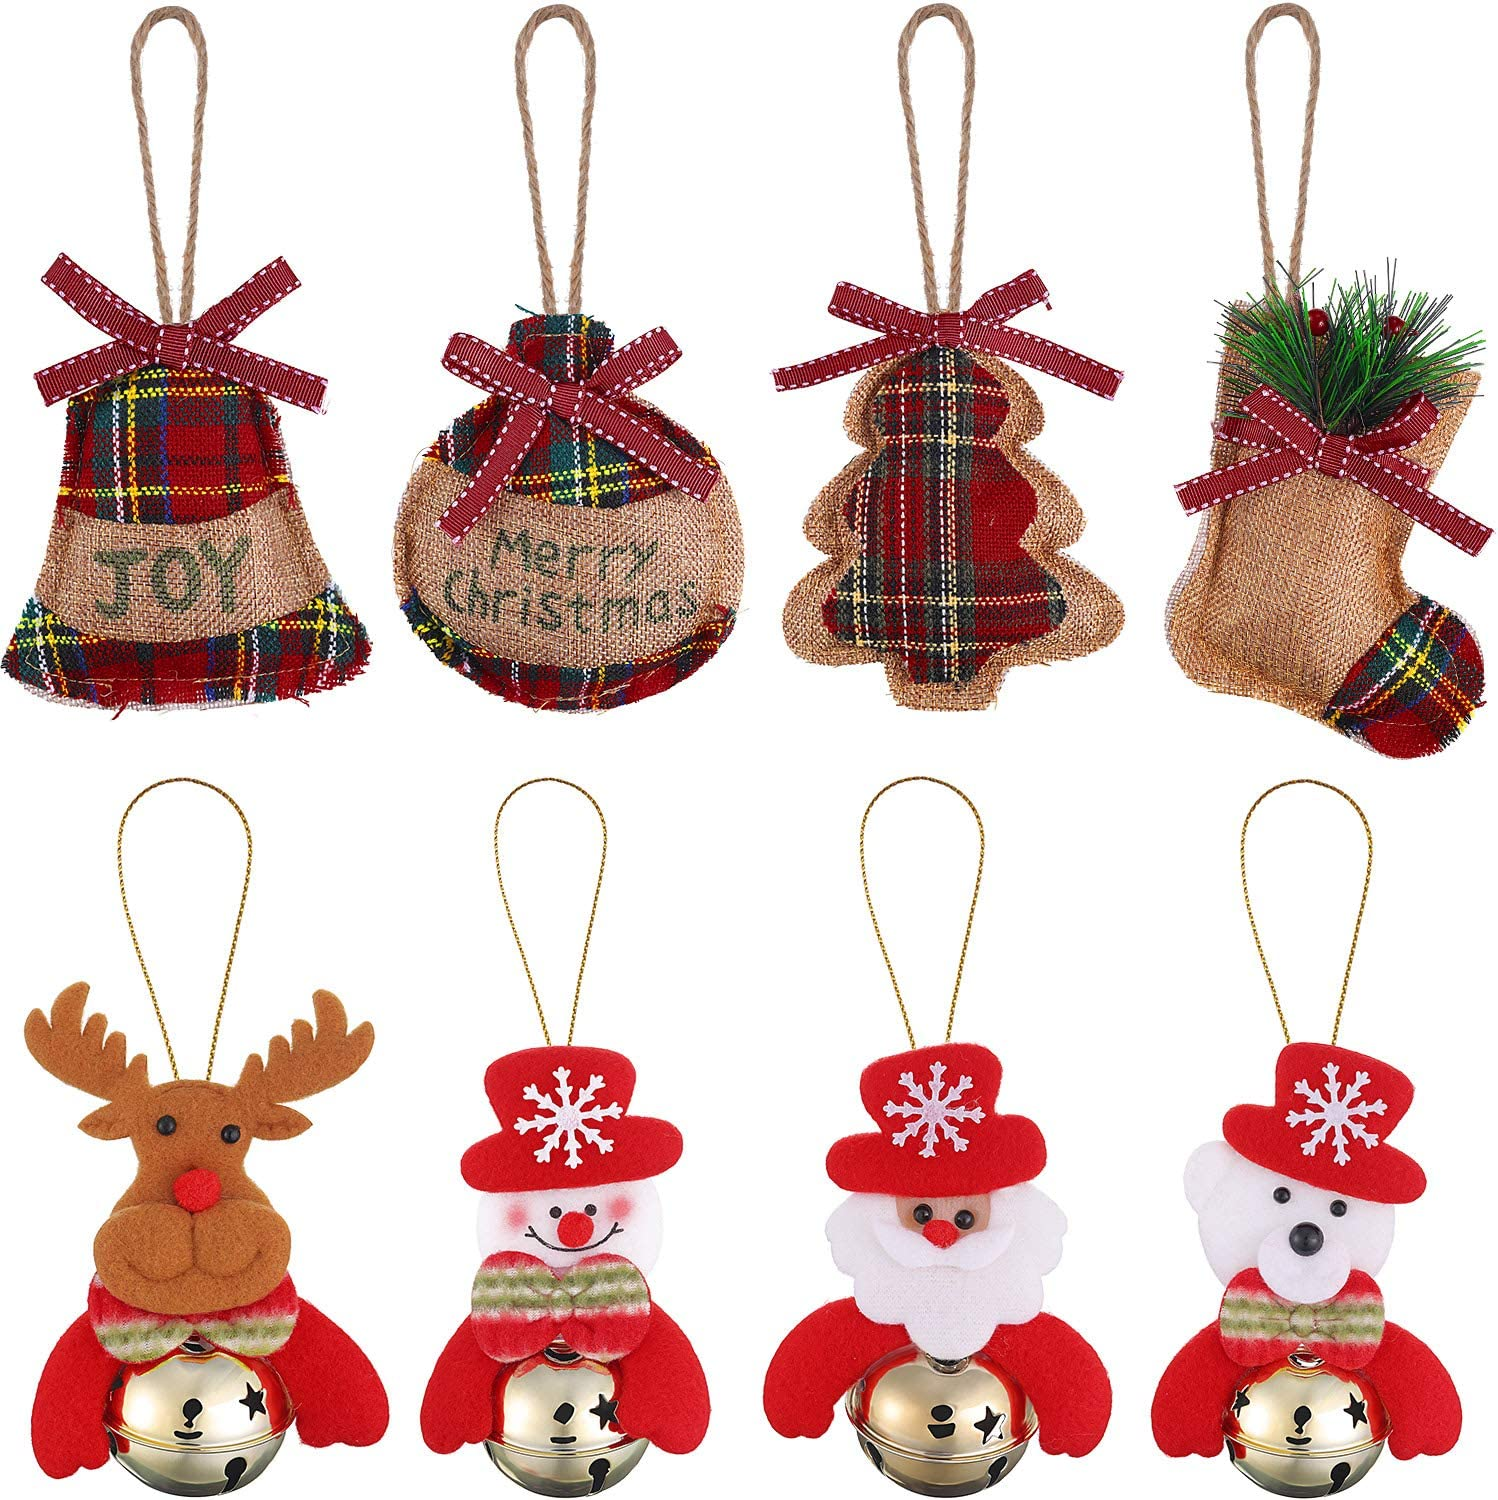 Gejoy 8 Pieces Burlap Hanging Christmas Tree Ornaments Set Christmas Bells Decorations for Home, Snowman/ Santa Claus/ Bear/ Elk/ Christmas Stocking/ Christmas Tree/ Ball/ Bell